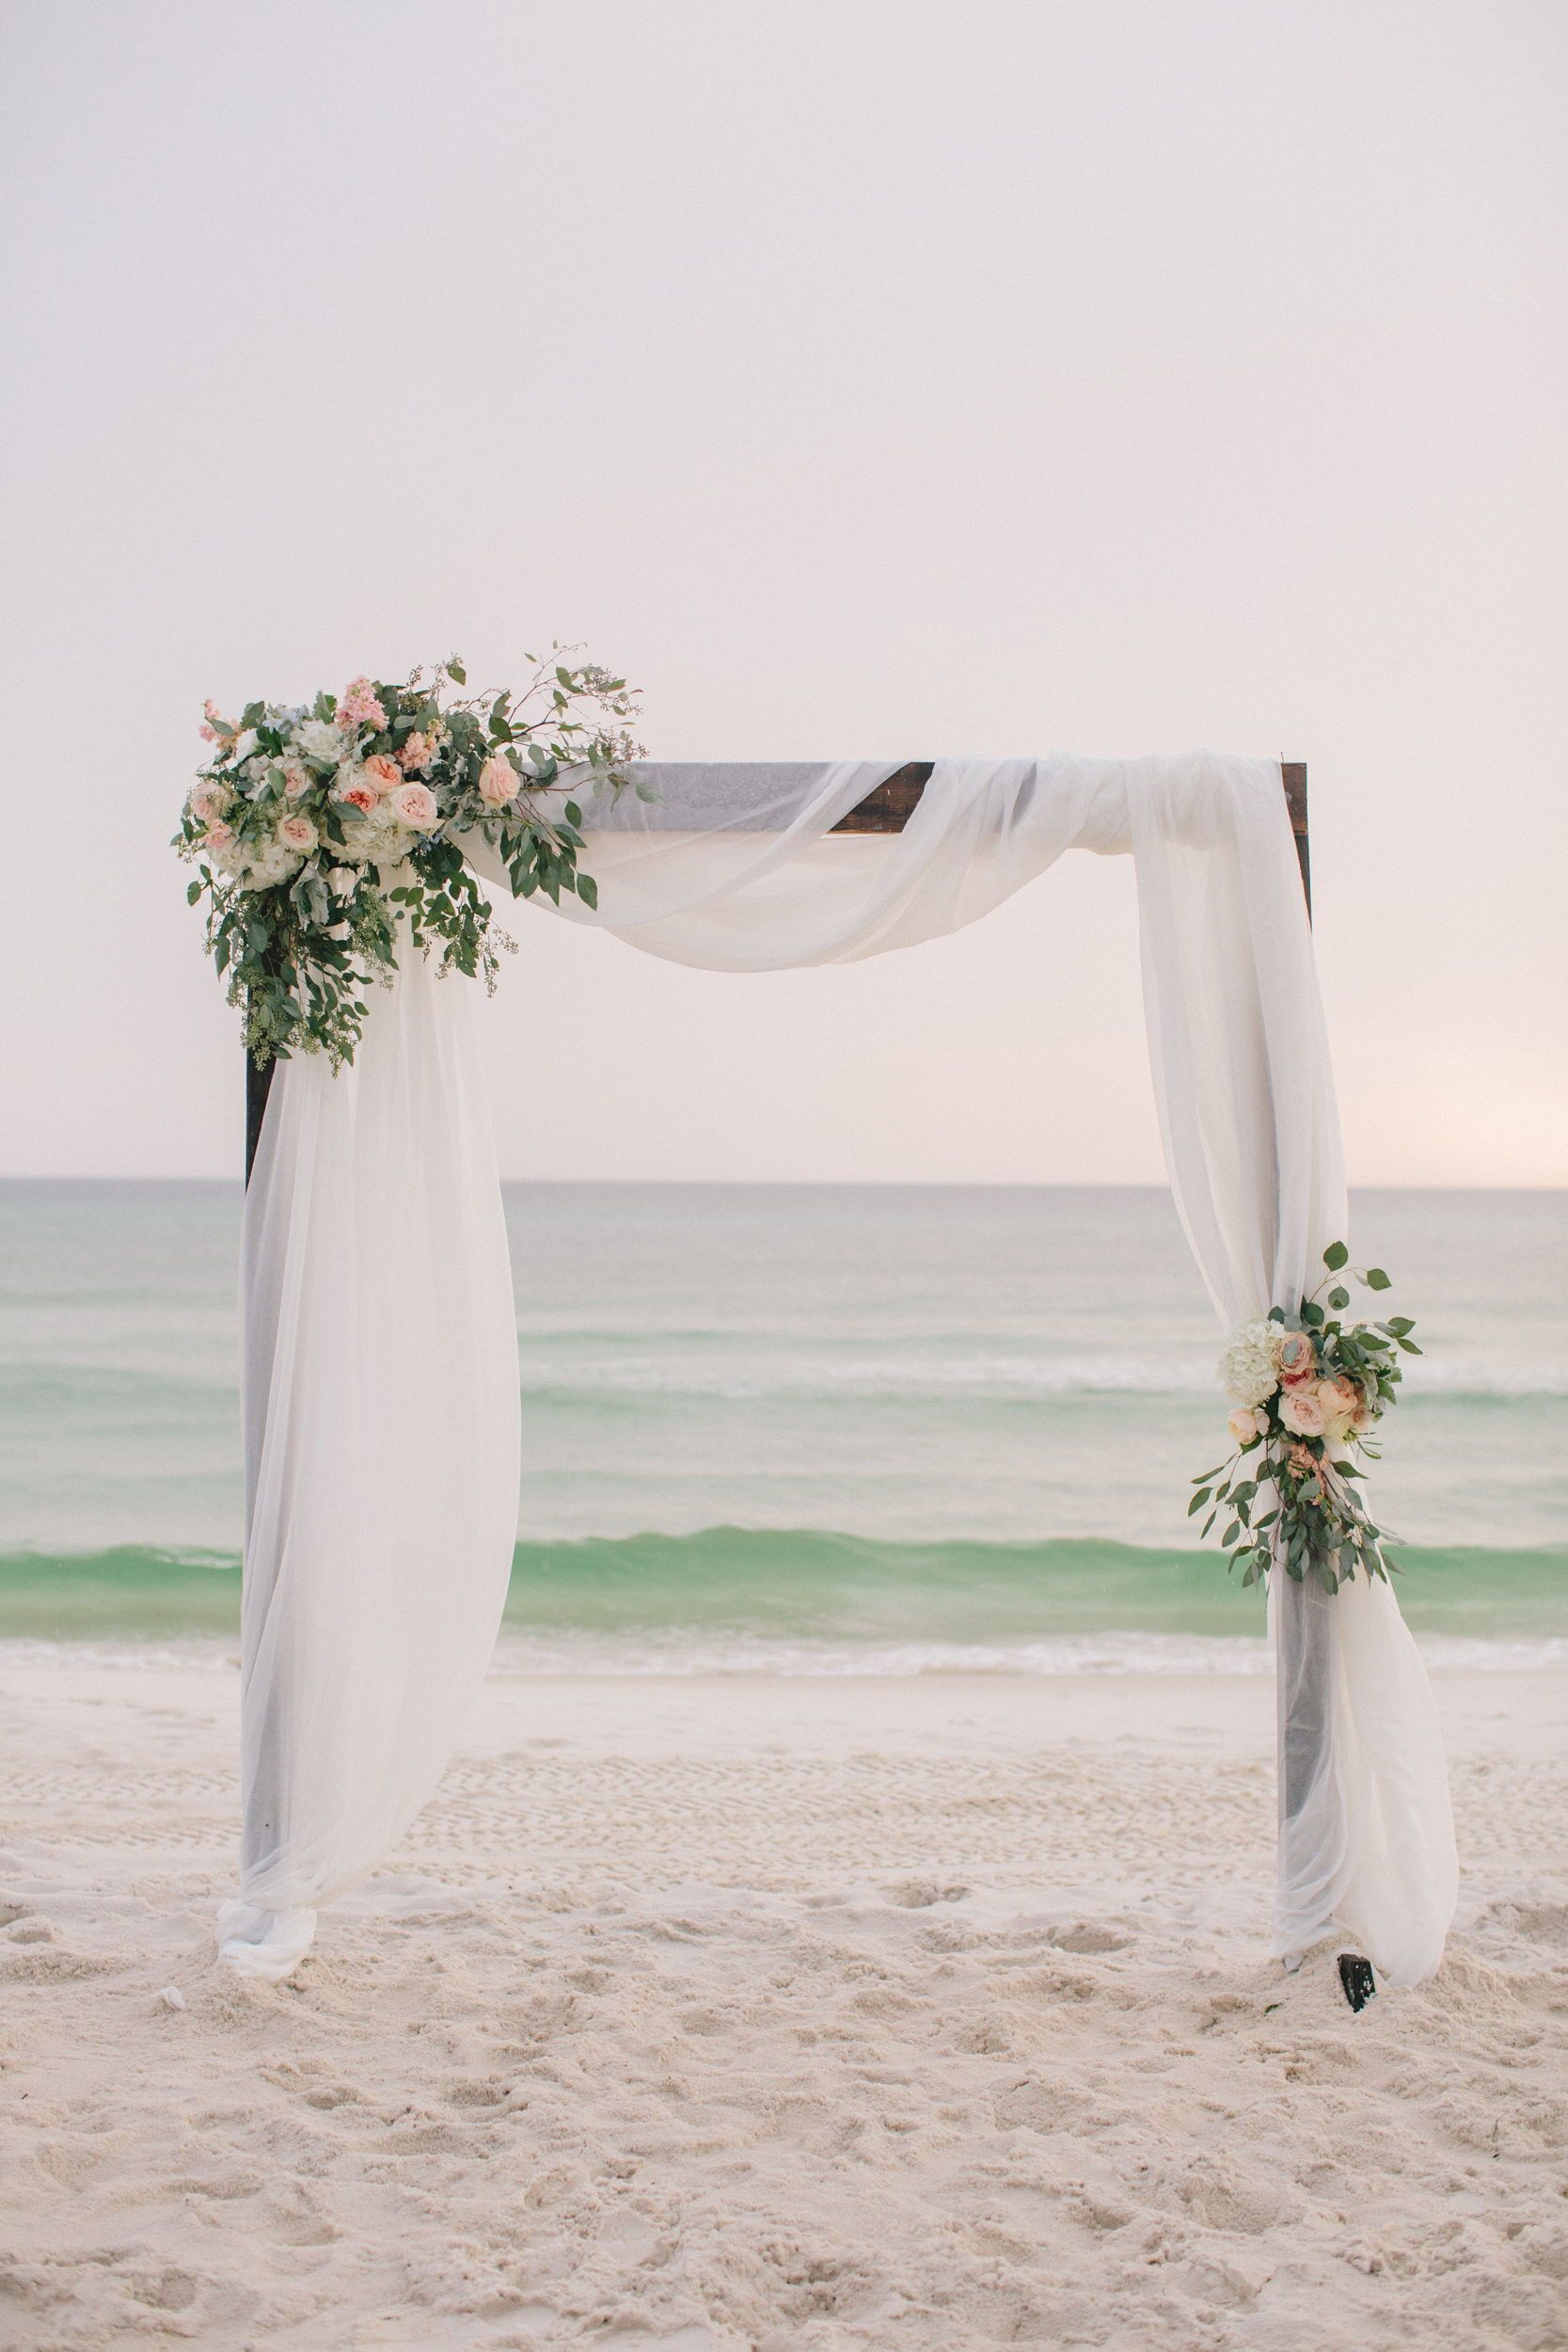 Simple beach wedding decor inspiration | Florida wedding | Flowers ...